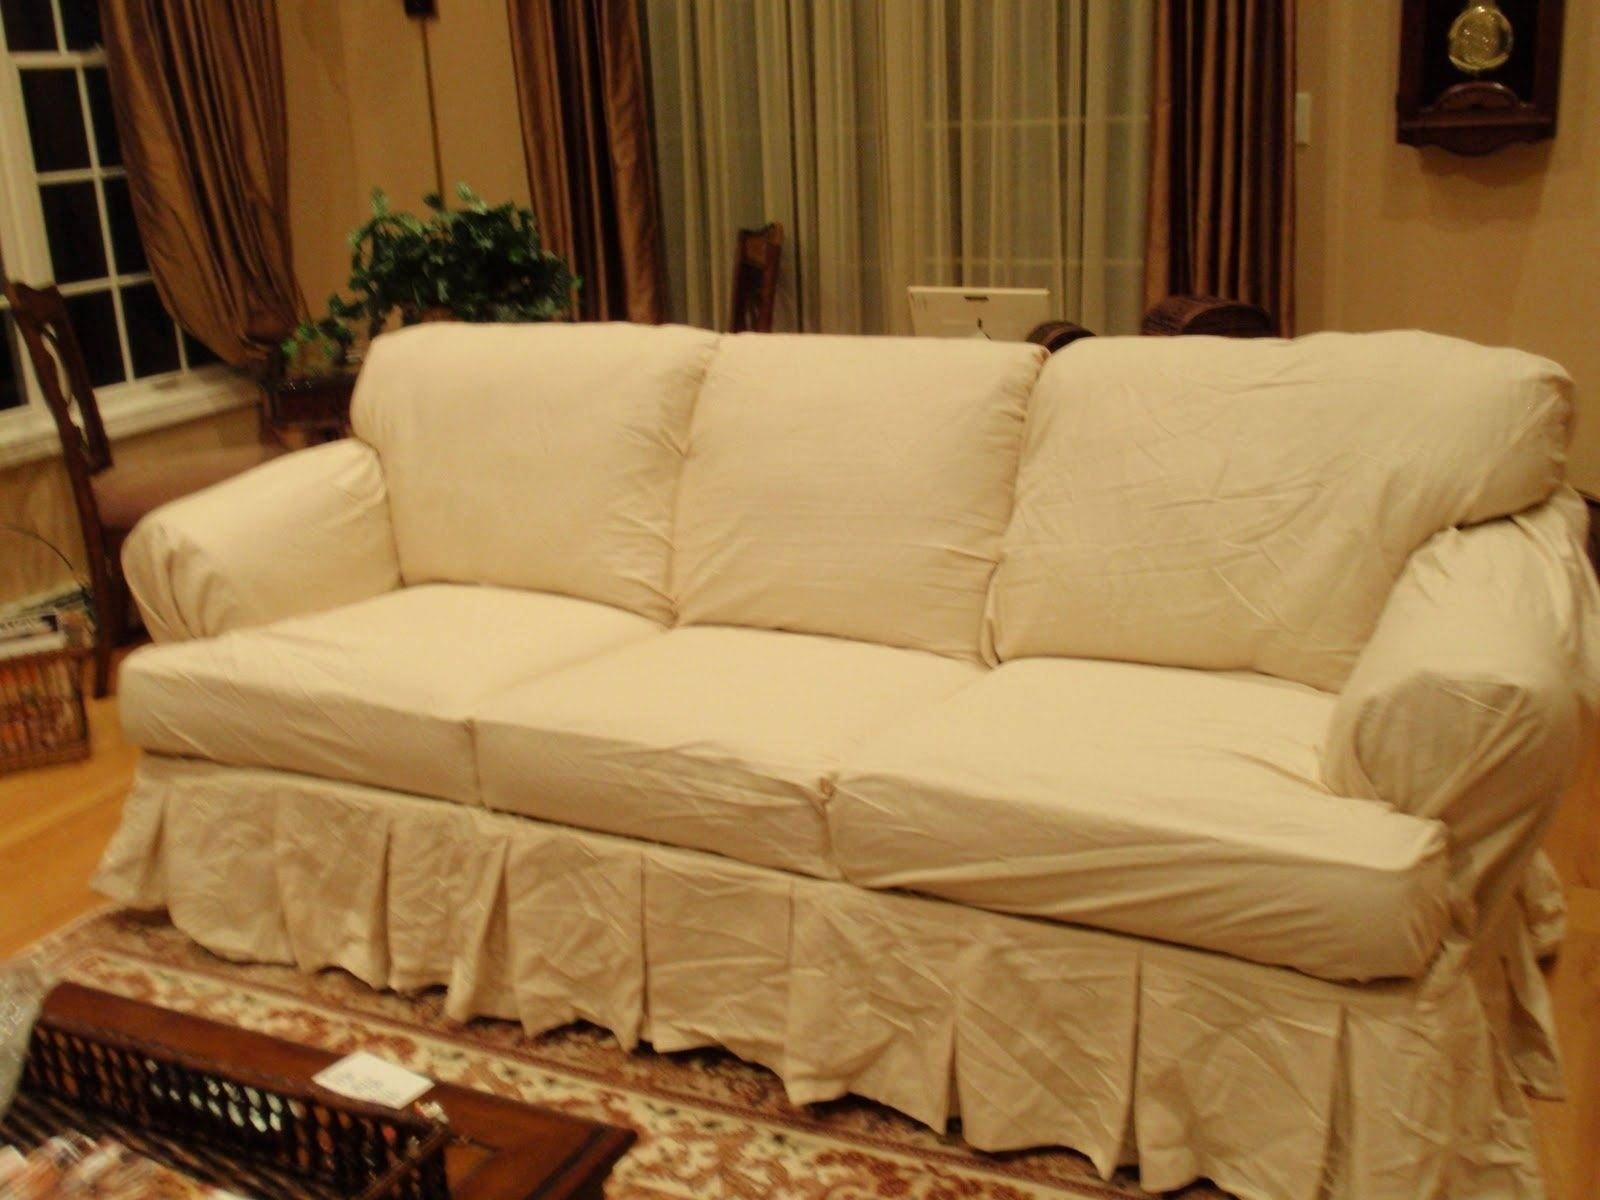 Tips: Smooth And Comfort Slipcovers For Sectional Couches Design For Slipcovers For 3 Cushion Sofas (View 13 of 15)